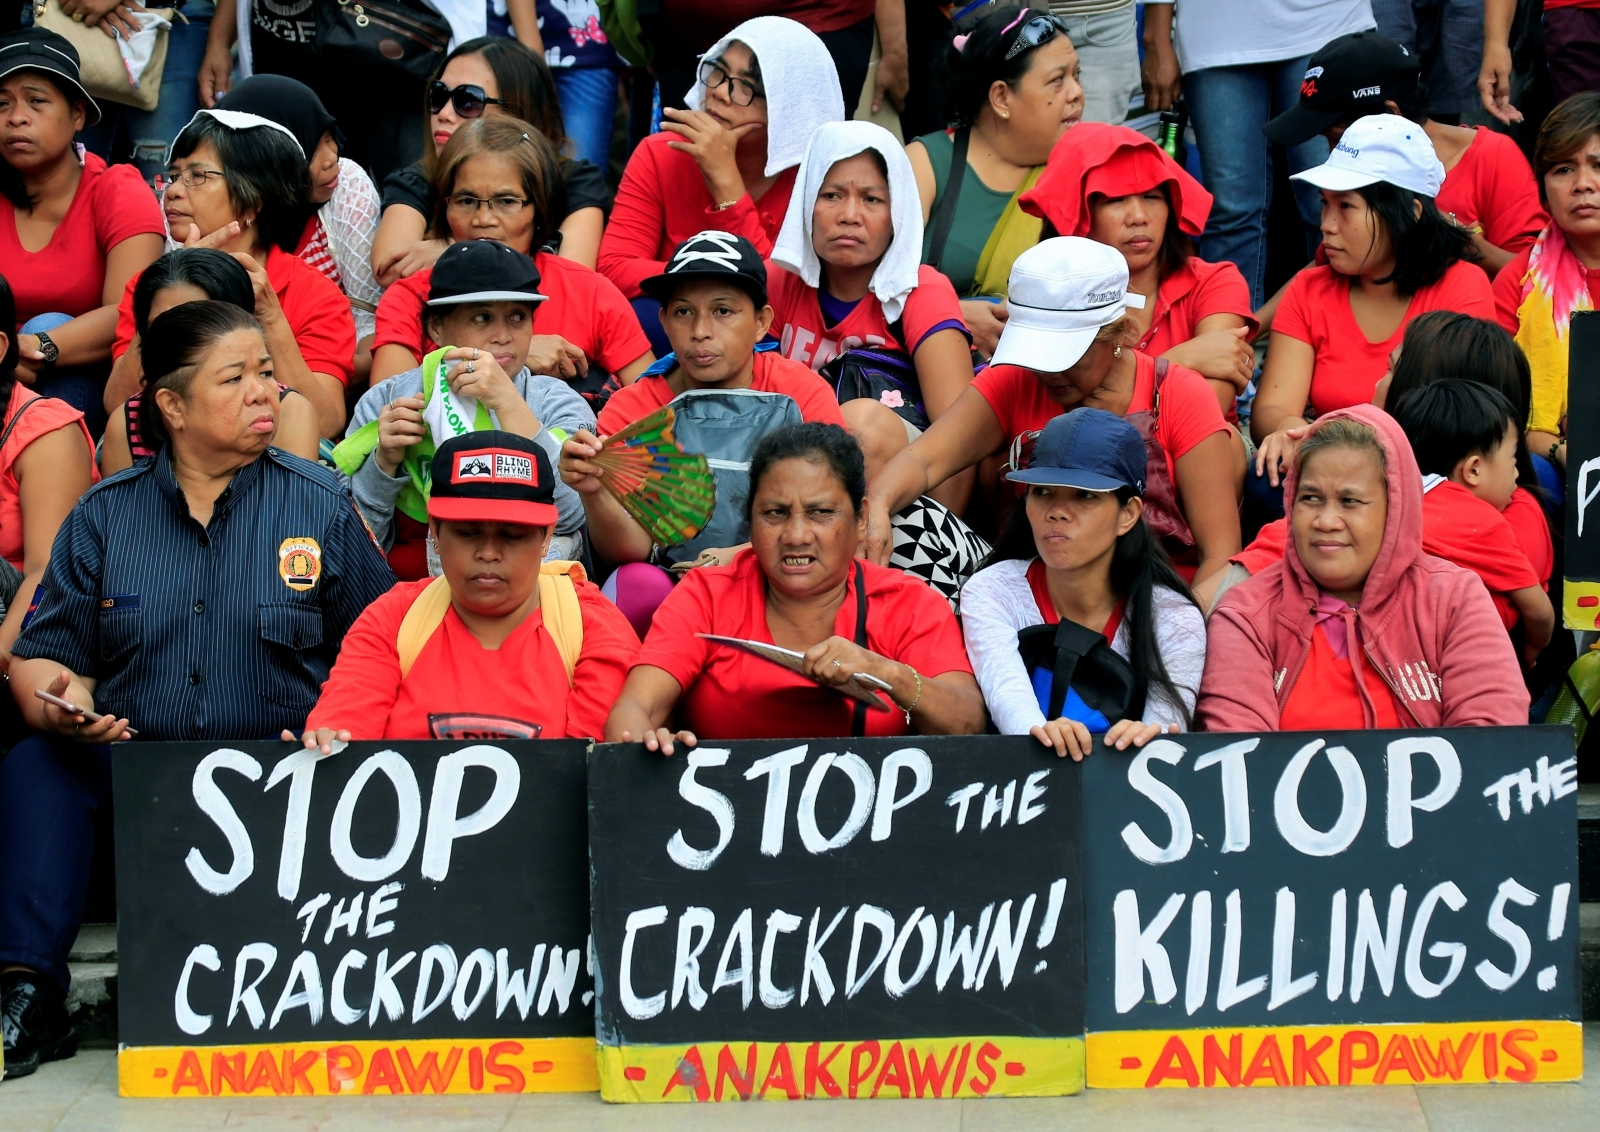 Philippines martial law and Duterte